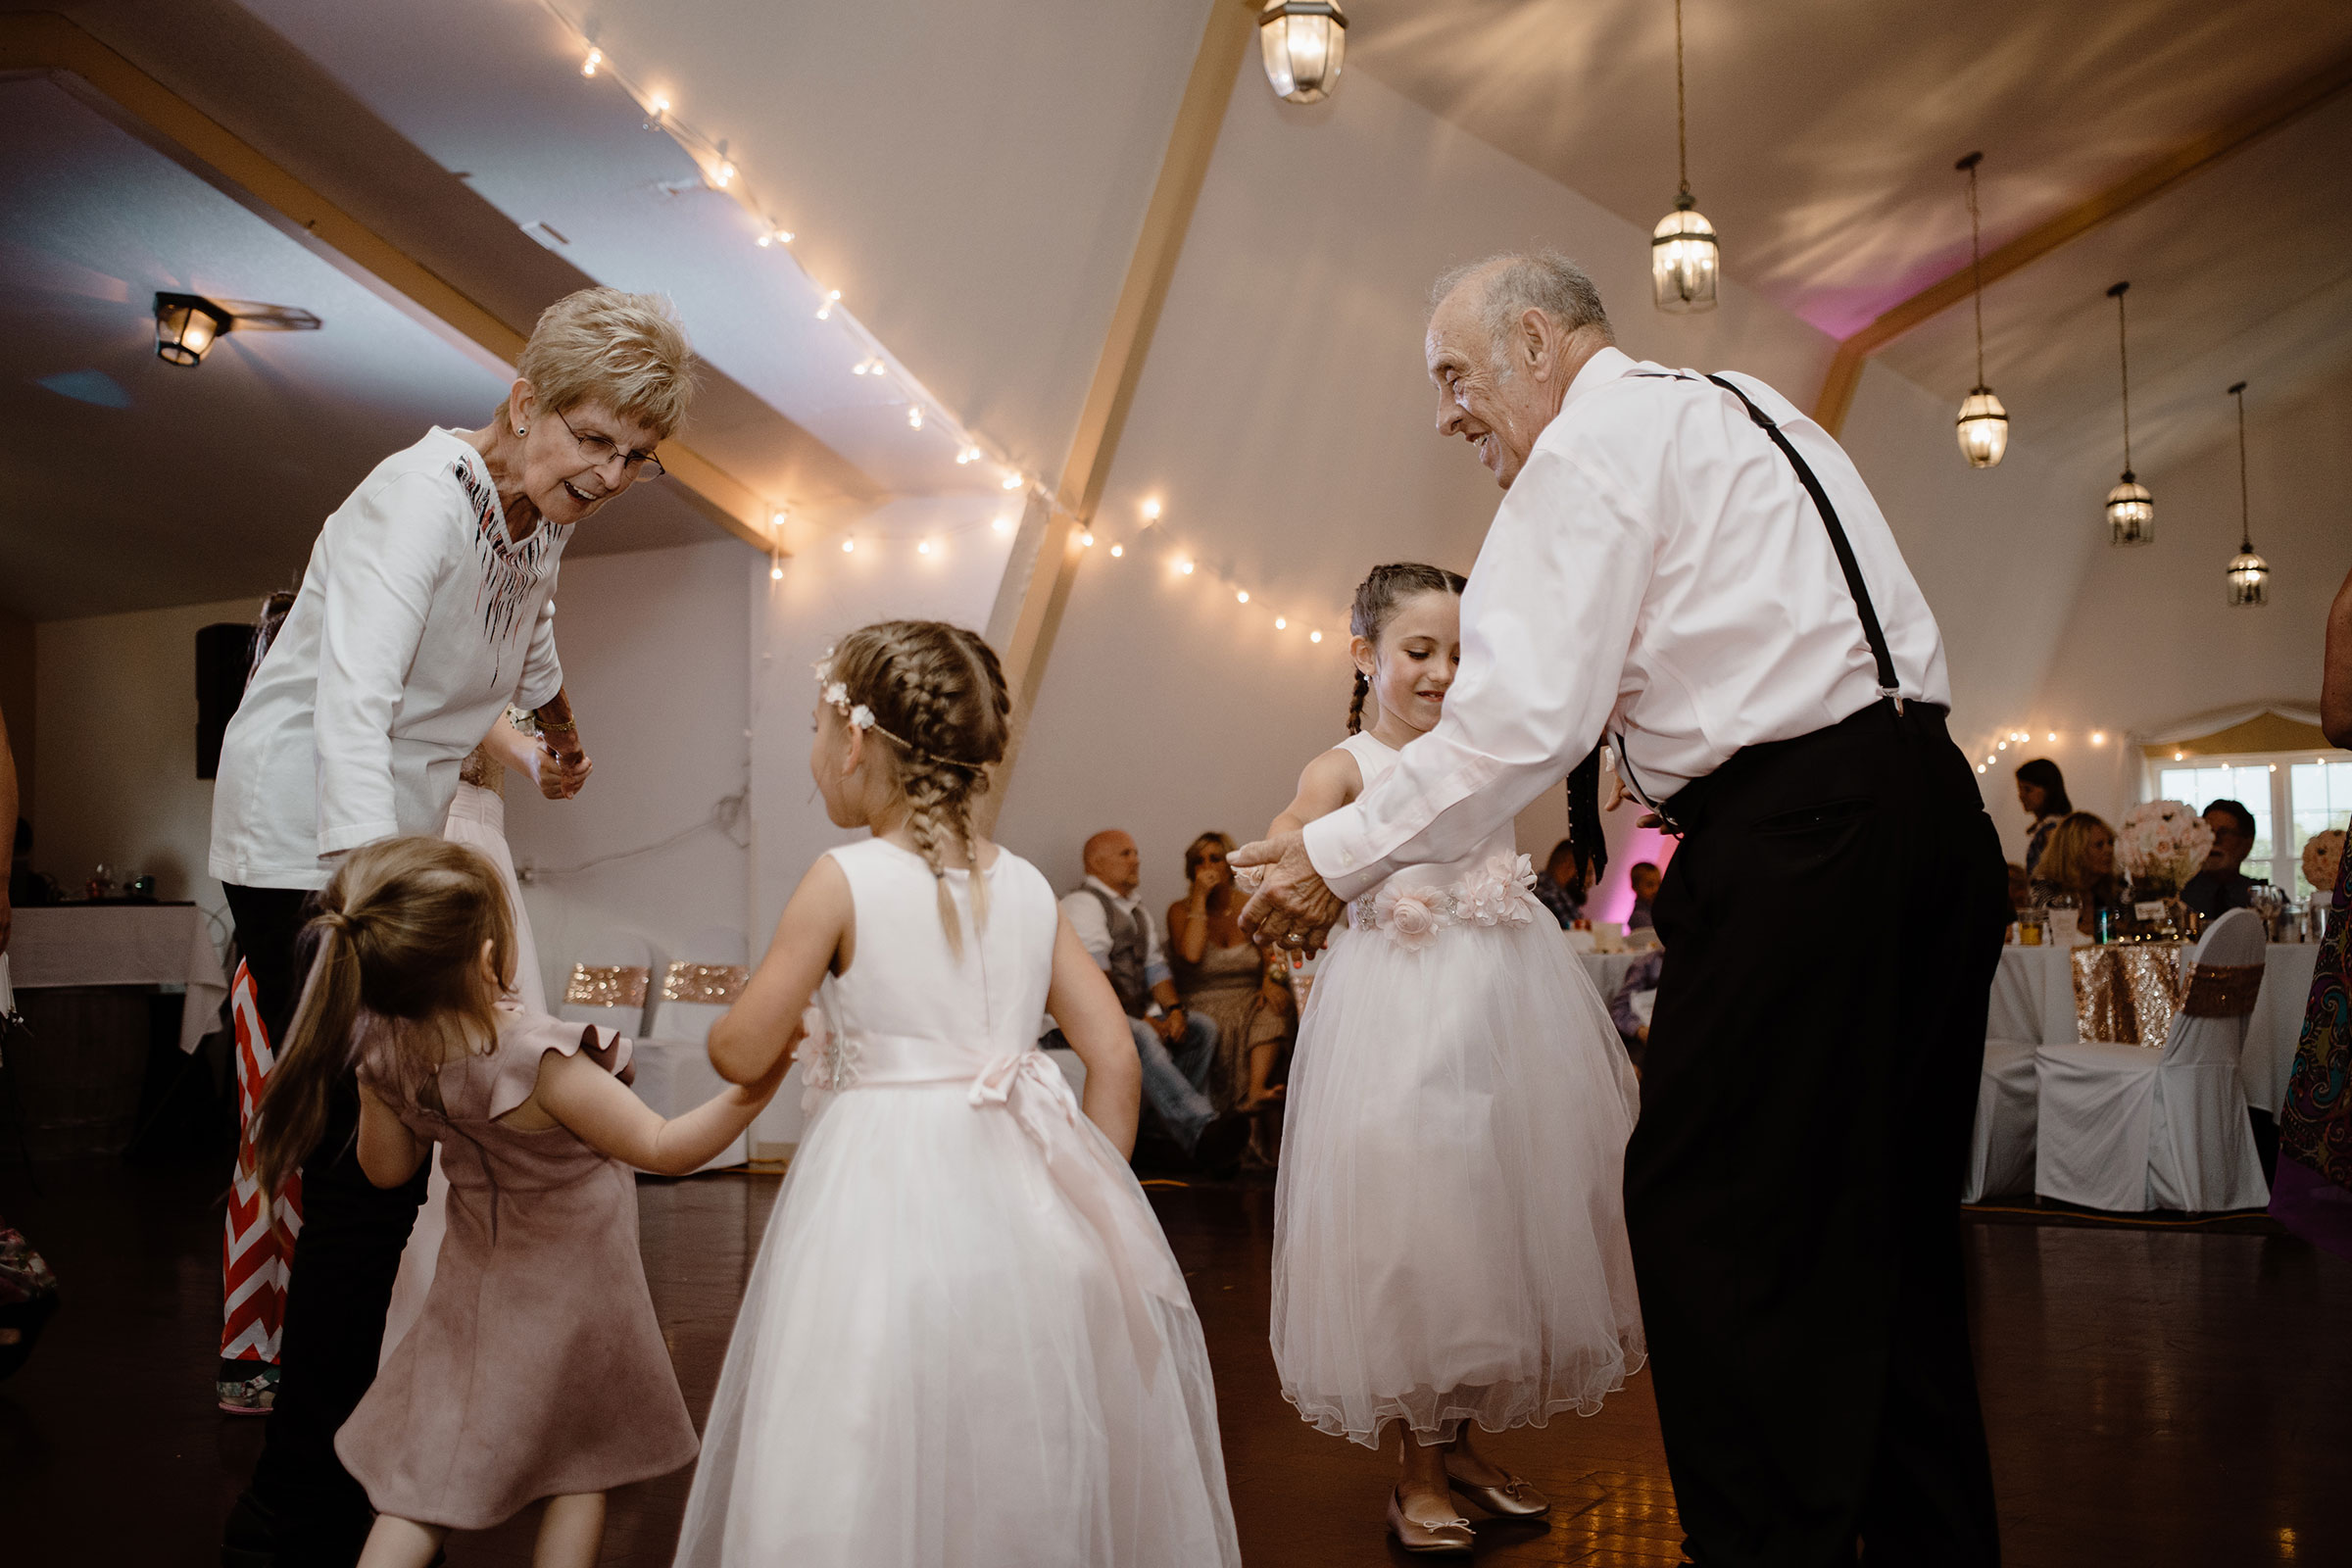 grandparents-dancing-with-granddaughters-wedding-summerset-winery-indianola-iowa-raelyn-ramey-photography.jpg